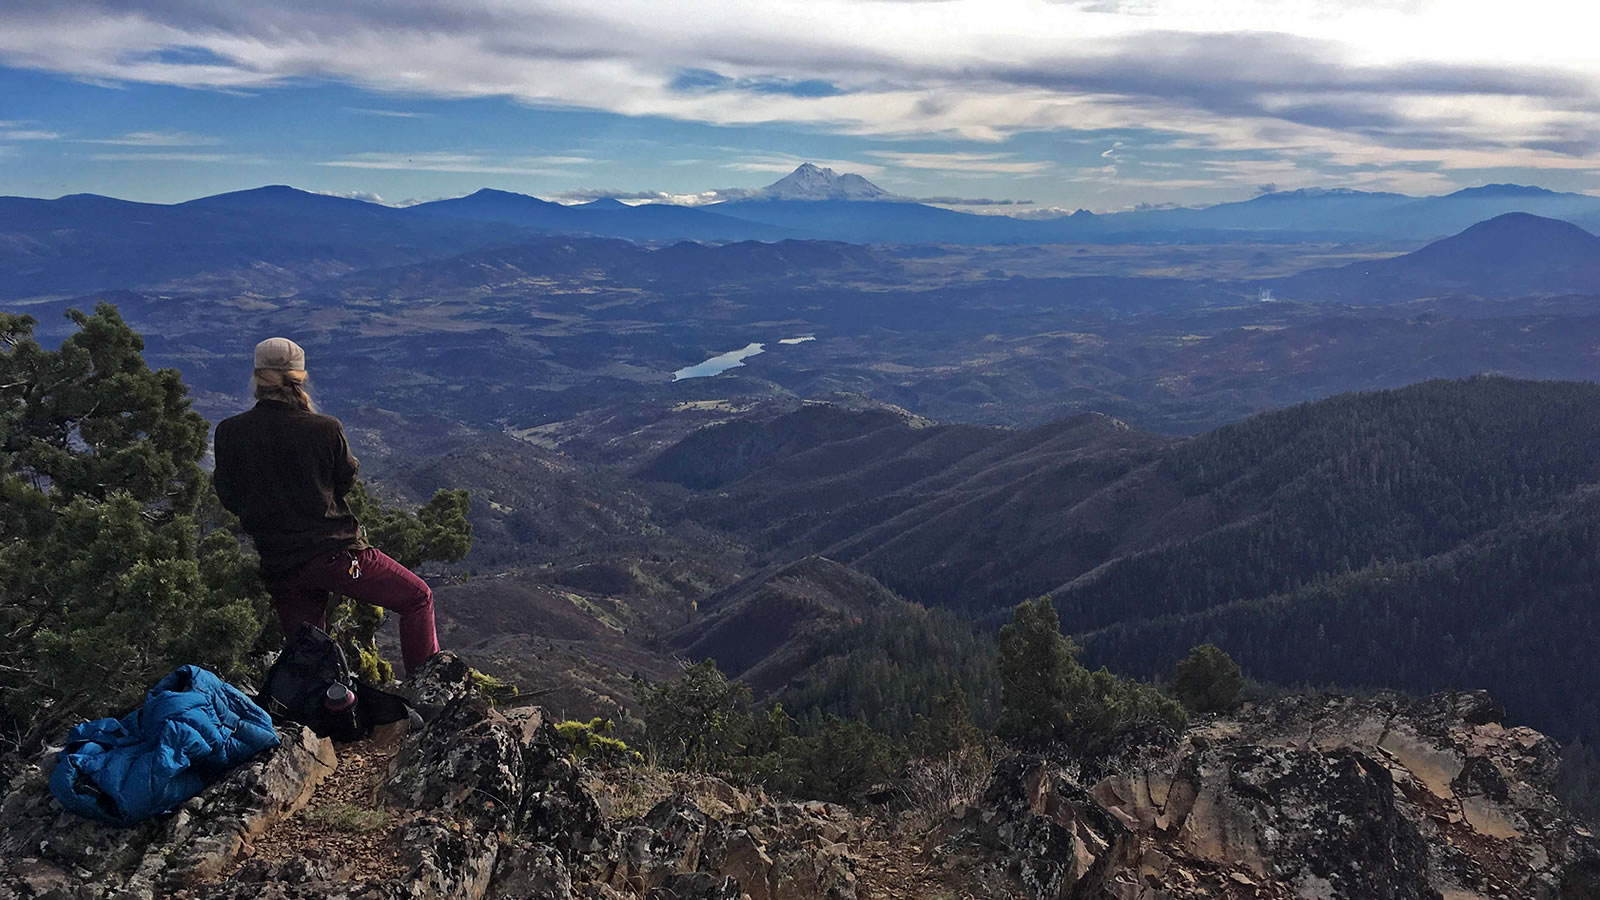 <h4>OUR PUBLIC LANDS</h4><h5>We're protecting Oregon's Cascade-Siskiyou, Maine's Katahdin Woods and Waters, New Mexico's Organ Mountains-Desert Peaks, and other national monuments.</h5><em>Bob Wick / BLM</em>